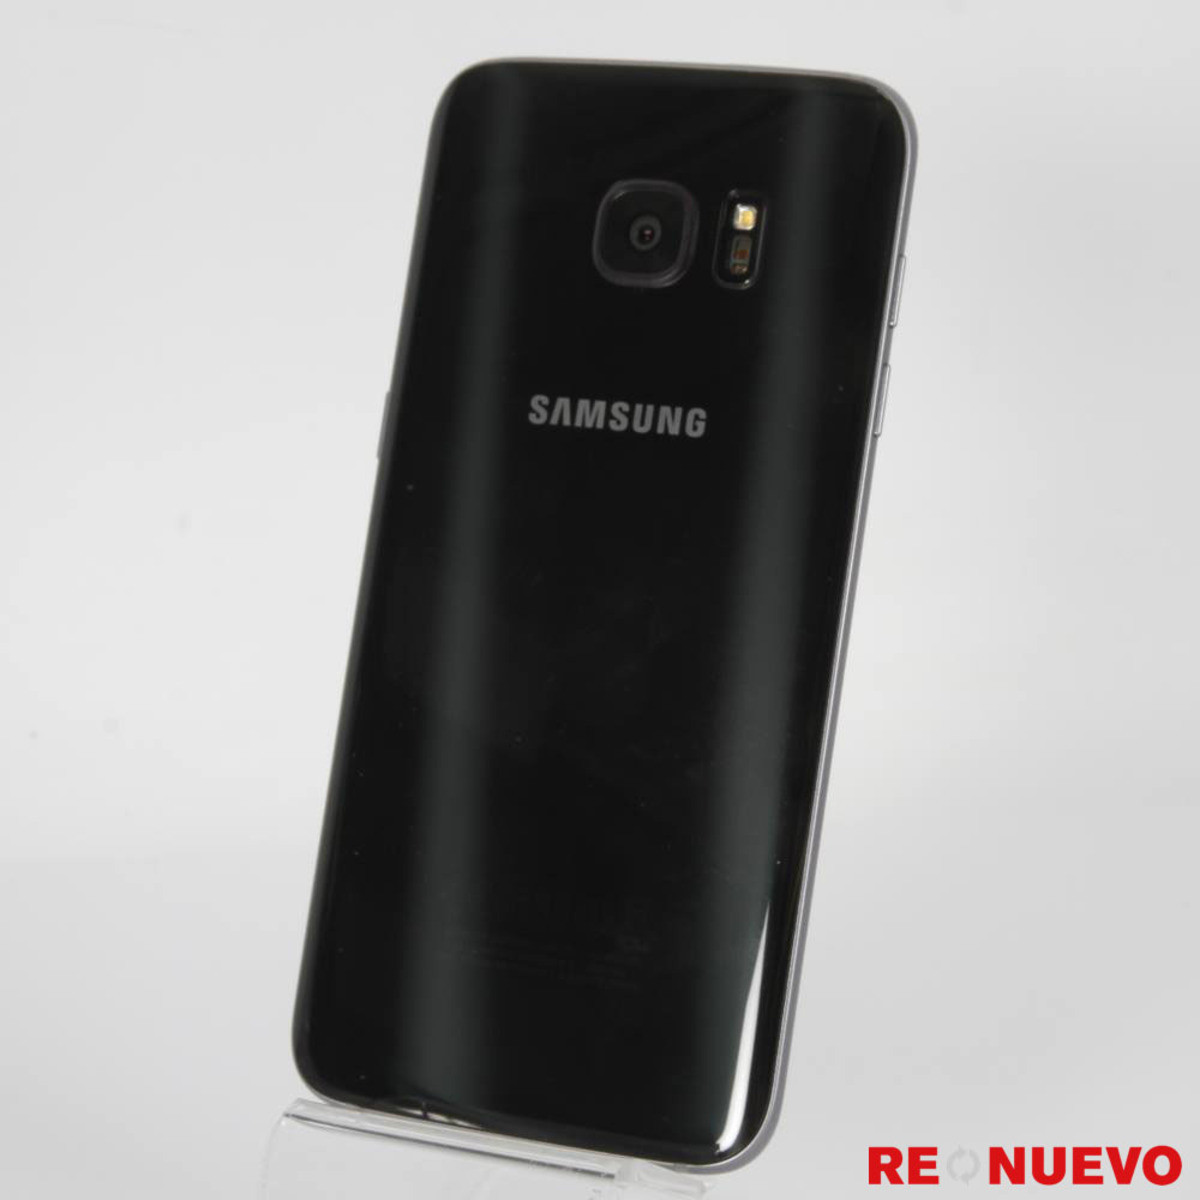 Comprar Galaxy S7 Edge Magnífico Prar Samsung Galaxy S7 Edge De 32gb Black Yx De Of Comprar Galaxy S7 Edge Perfecto Samsung Galaxy S7 Edge Celulares Costa Rica